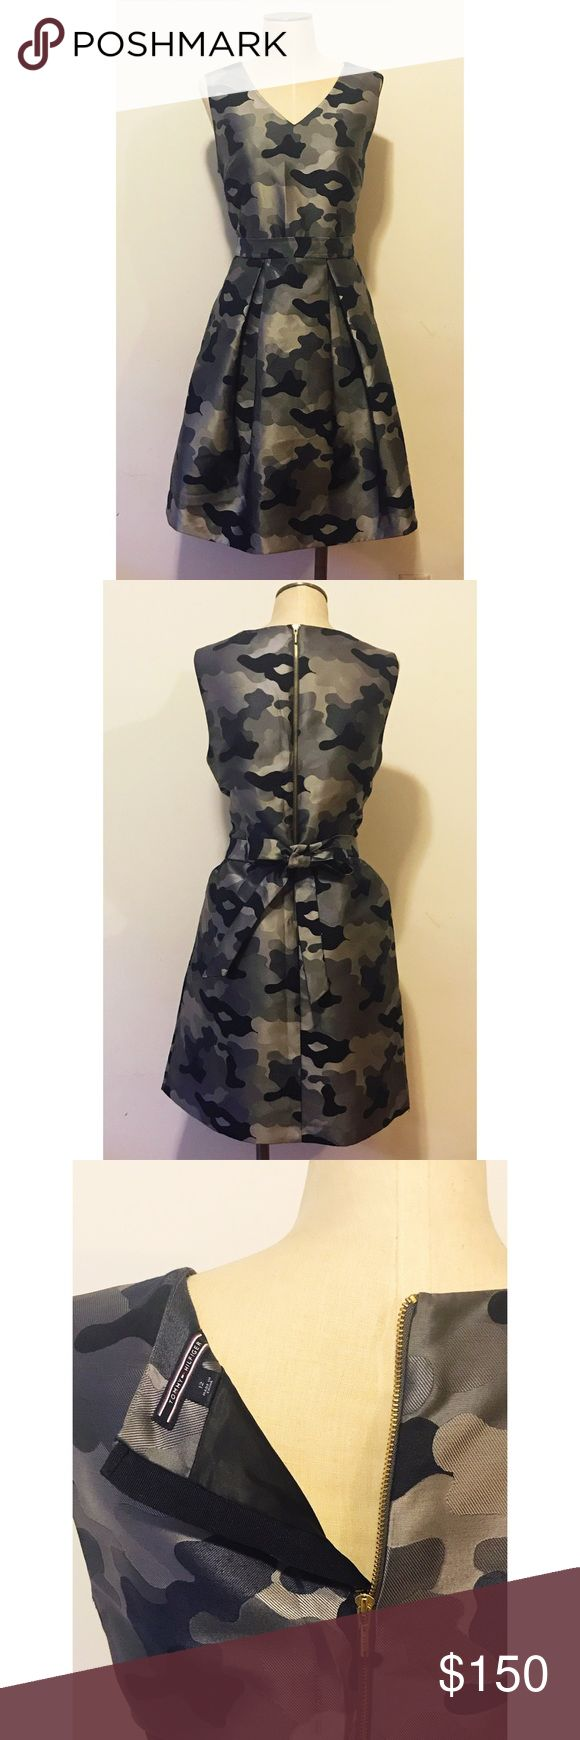 "Camouflage aline cocktail dress Sleeveless camouflage aline dress, amazing material and very flattering fit, ideal for weddings, galas, graduations or any semi formal event, can be worn with tights in winter or bare for warmer events, comes with ""belt"" in matching material, belt can be worn with bow in front or back Tommy Hilfiger Dresses"